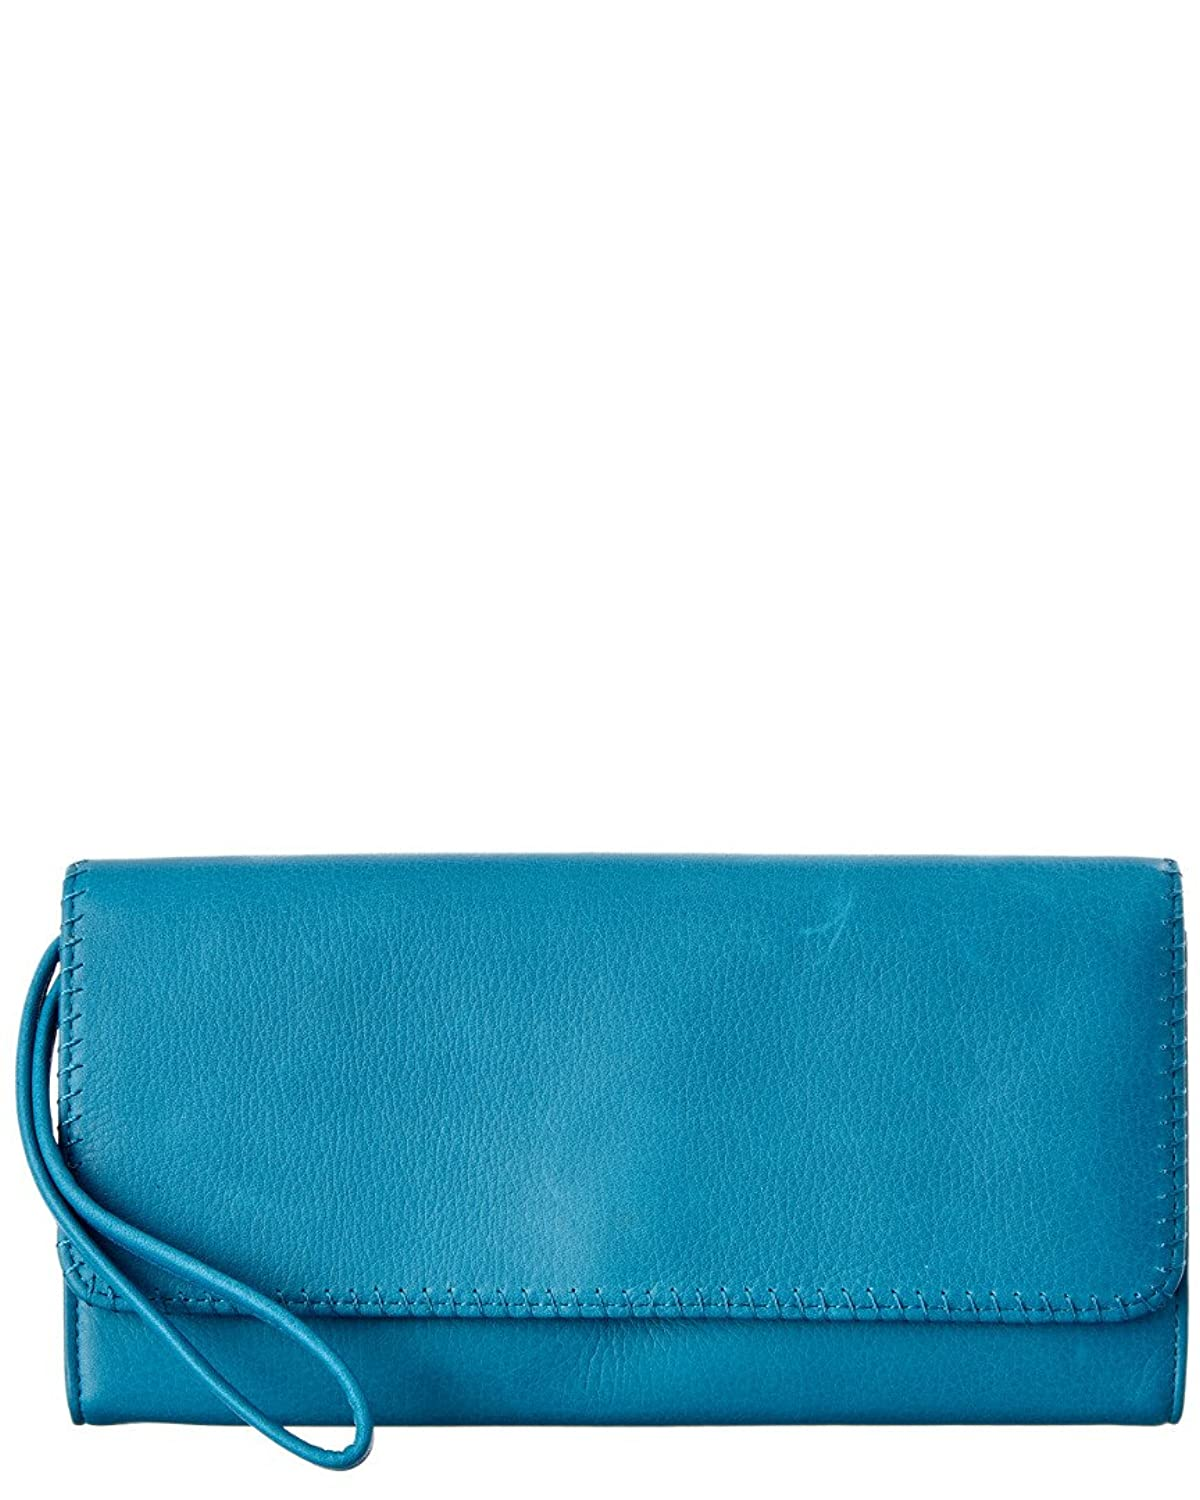 Hobo Era Leather Wristlet Clutch, Blue